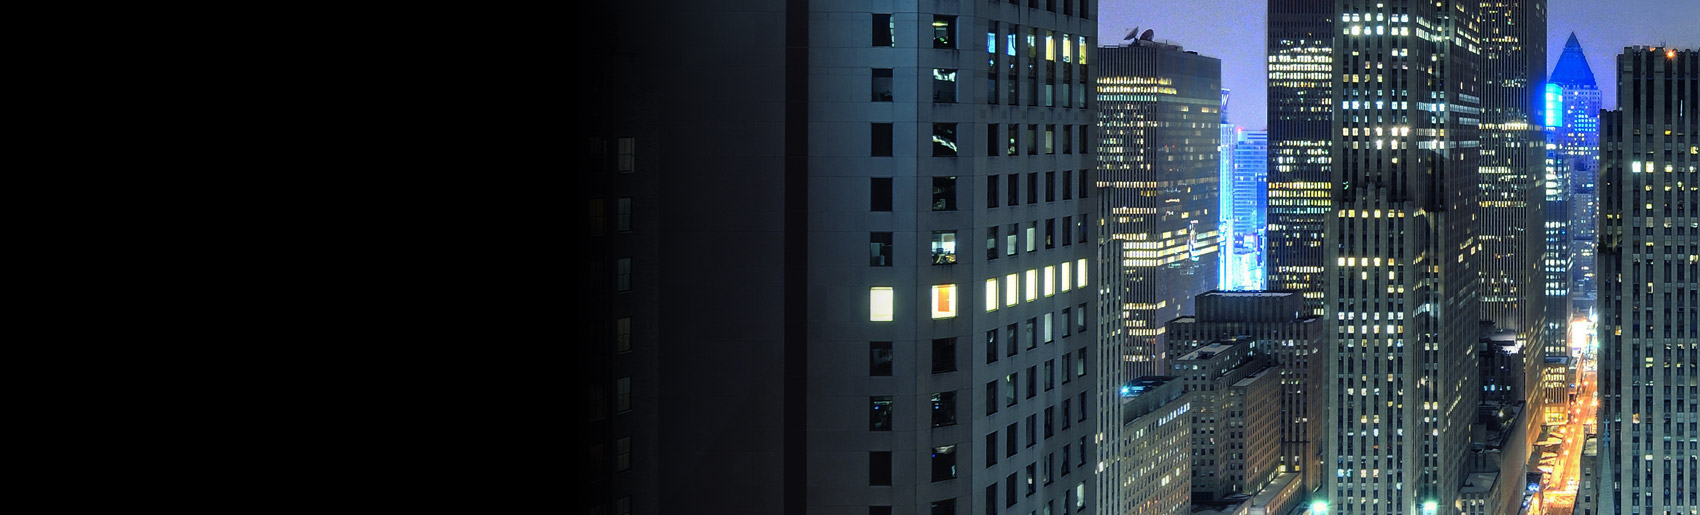 Skyscrapers at dusk with lit windows